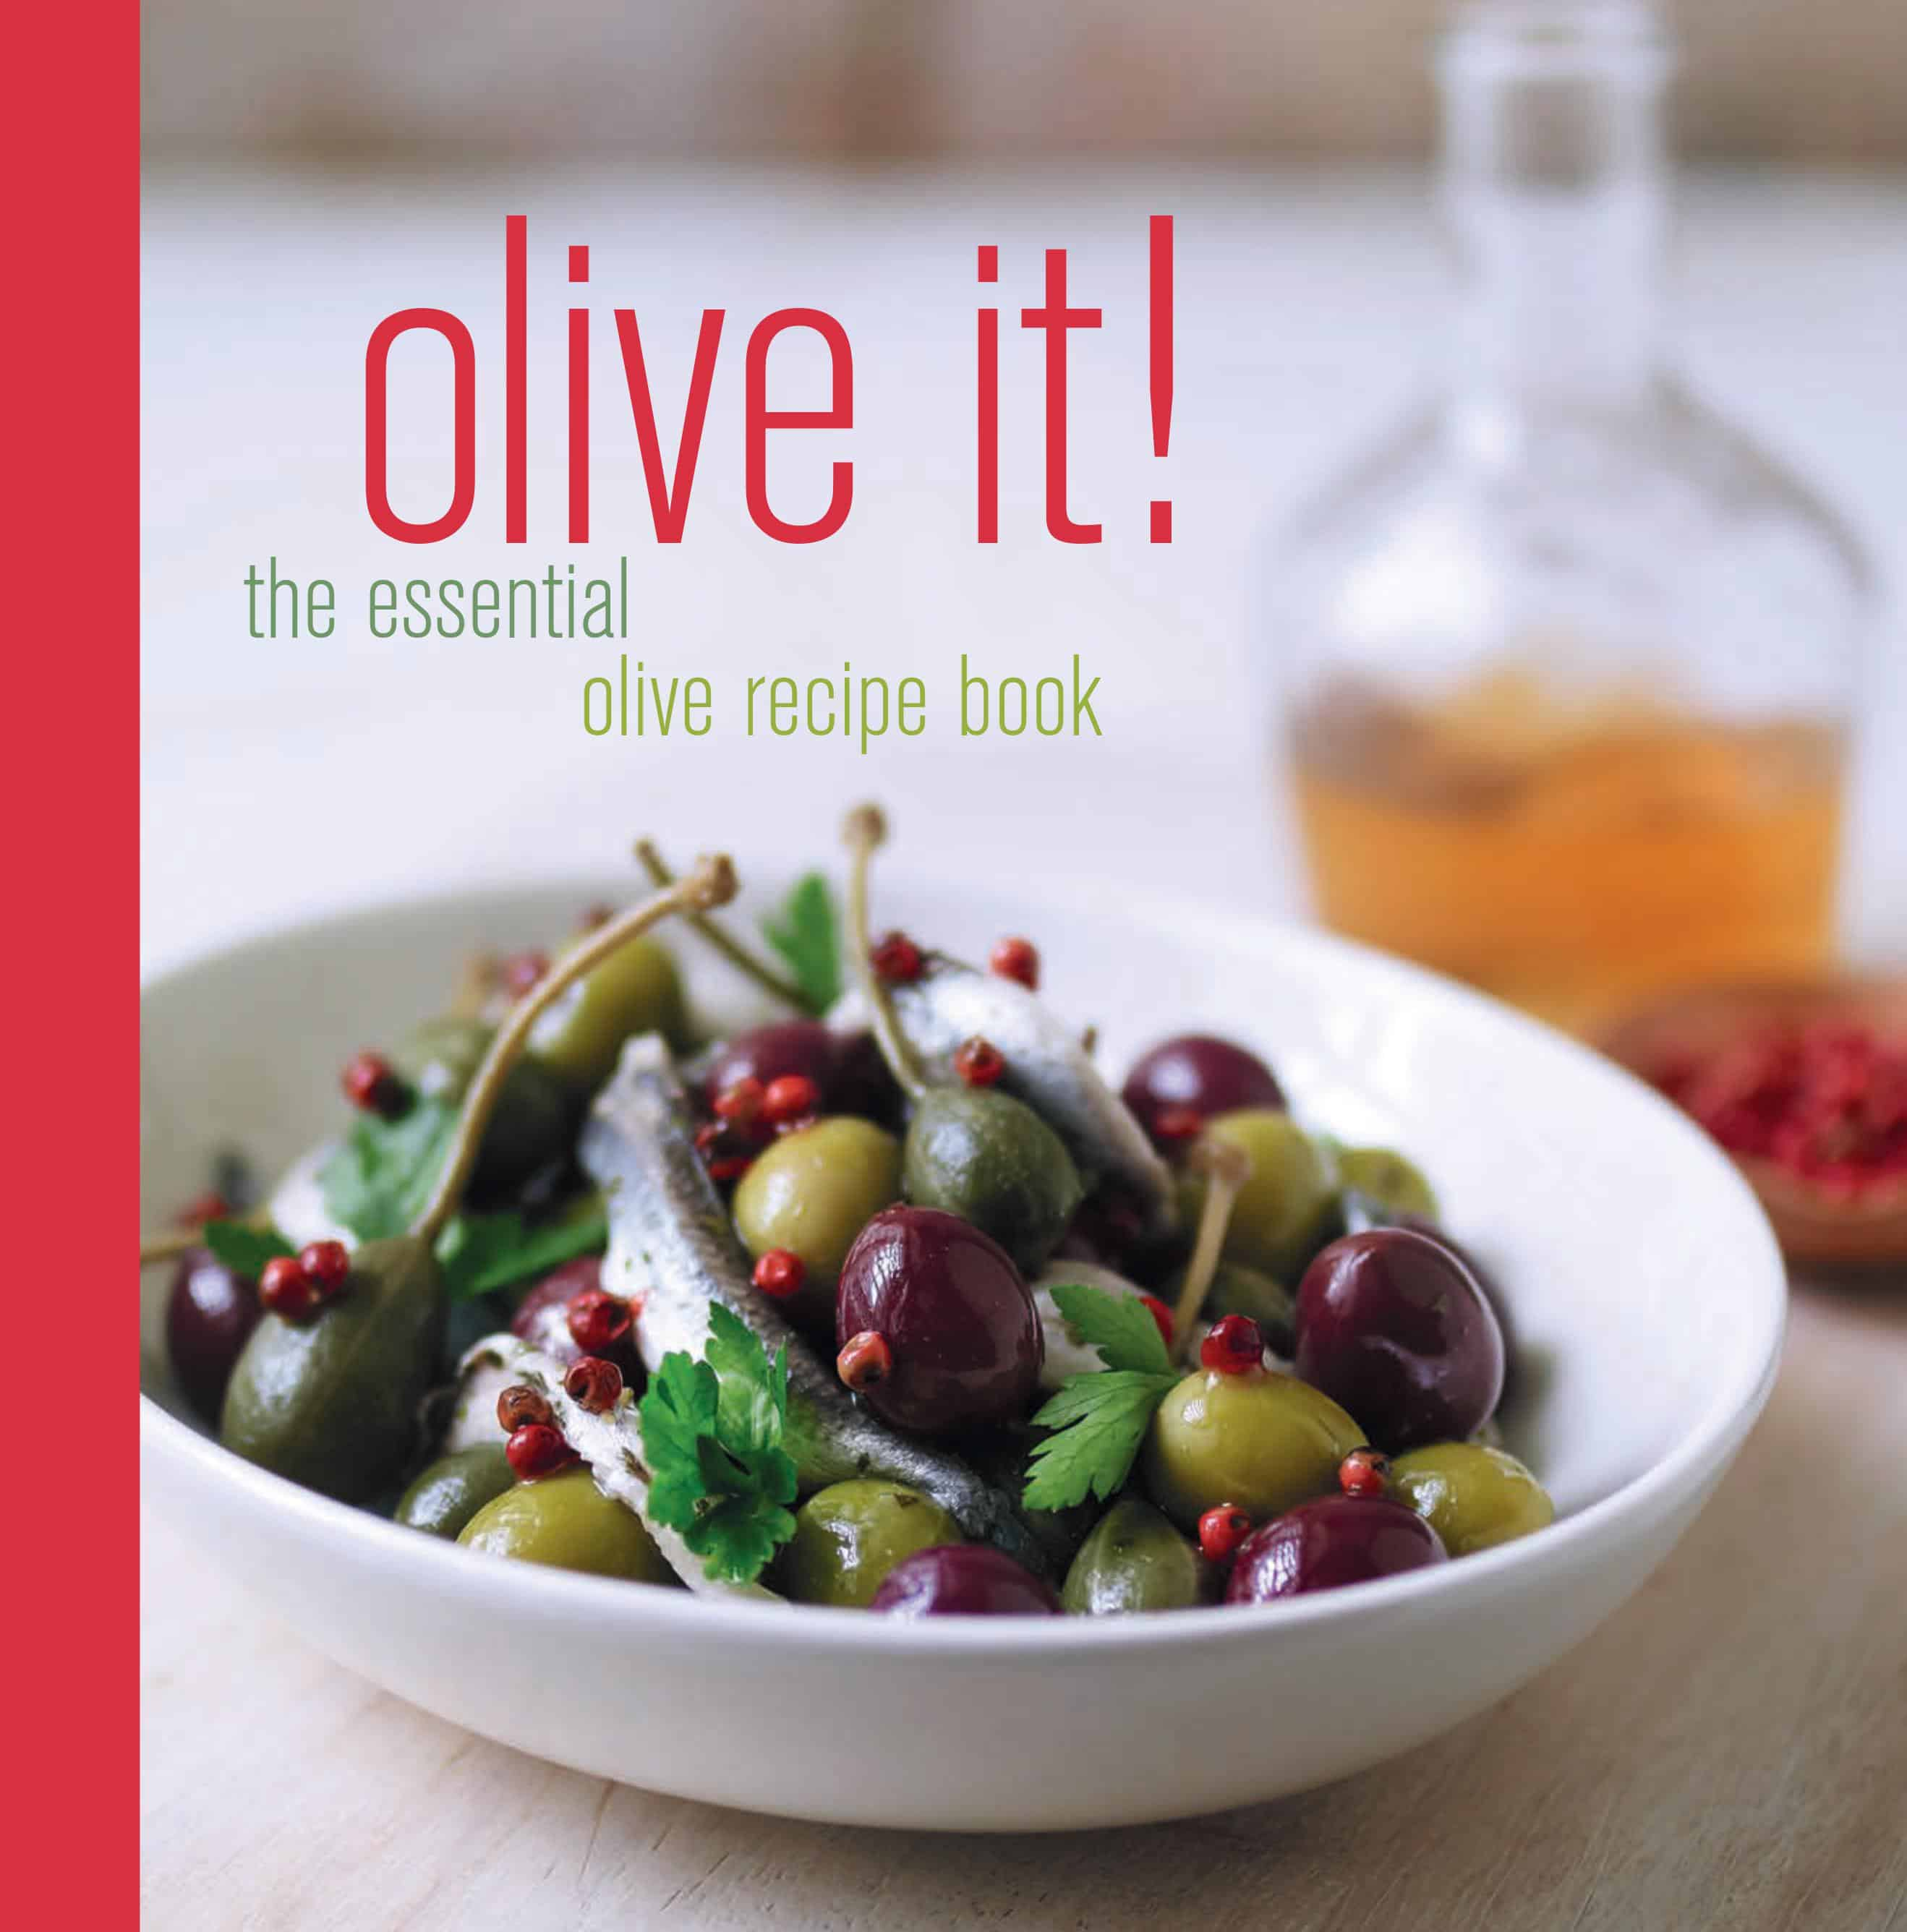 Olive it! recipe book front cover[2]